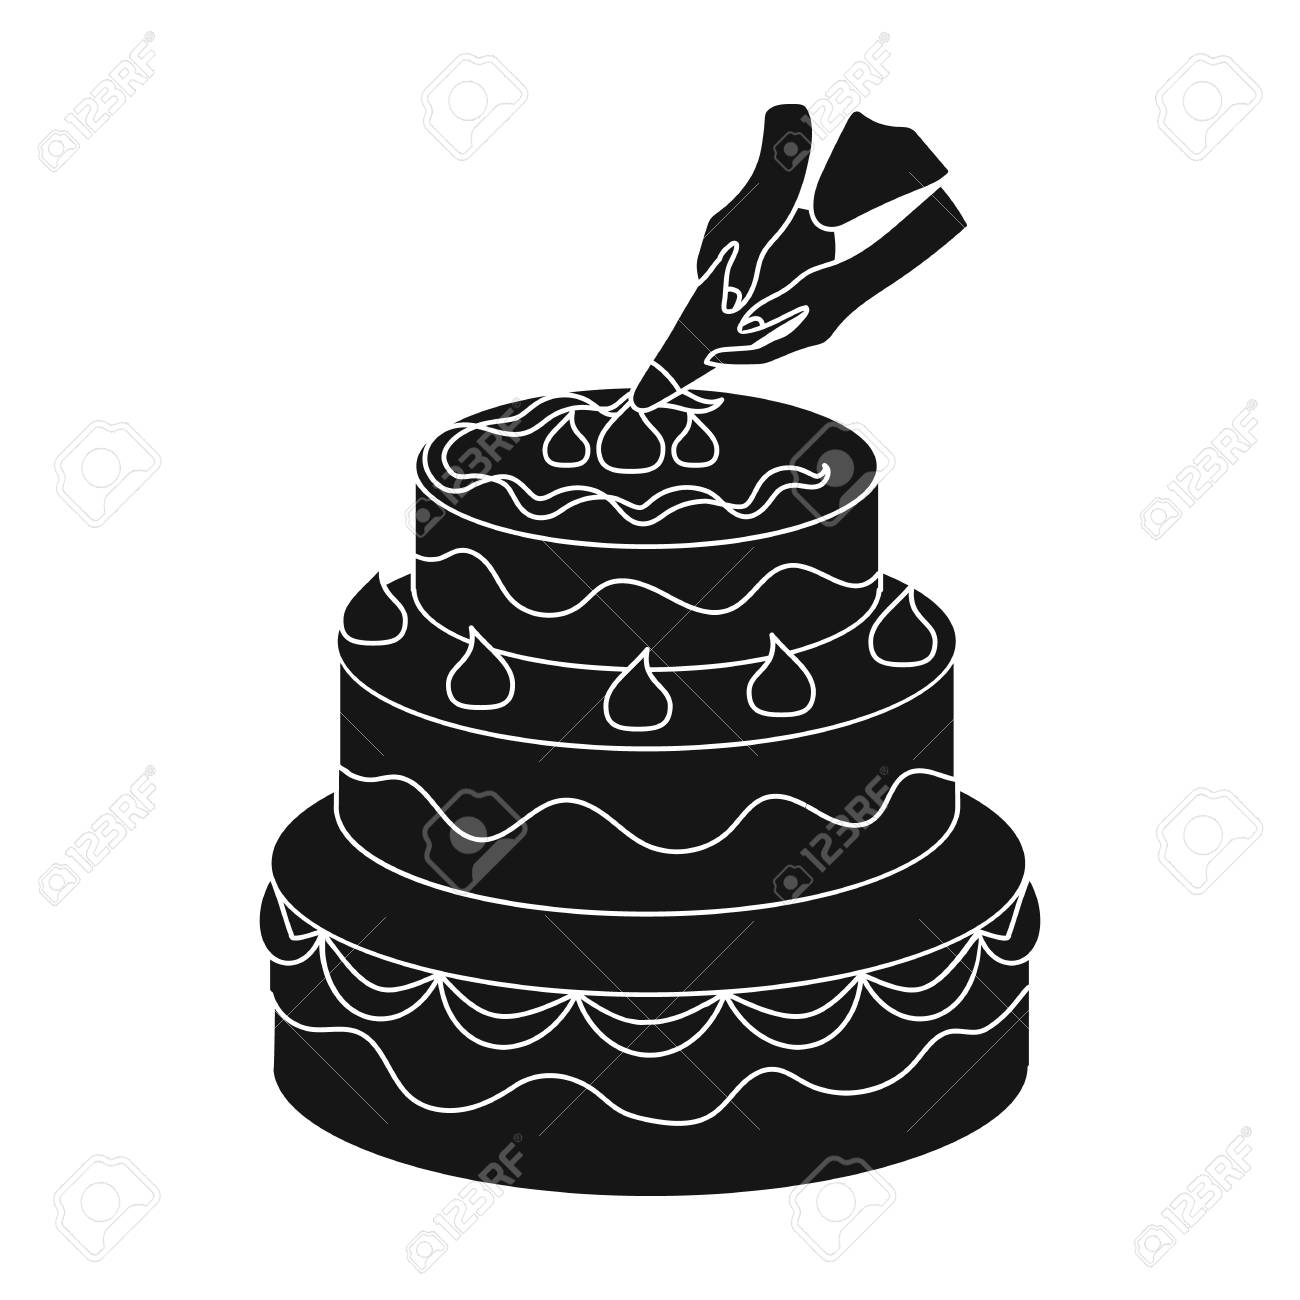 Decorating Of Birthday Cake Icon In Black Style Isolated On White